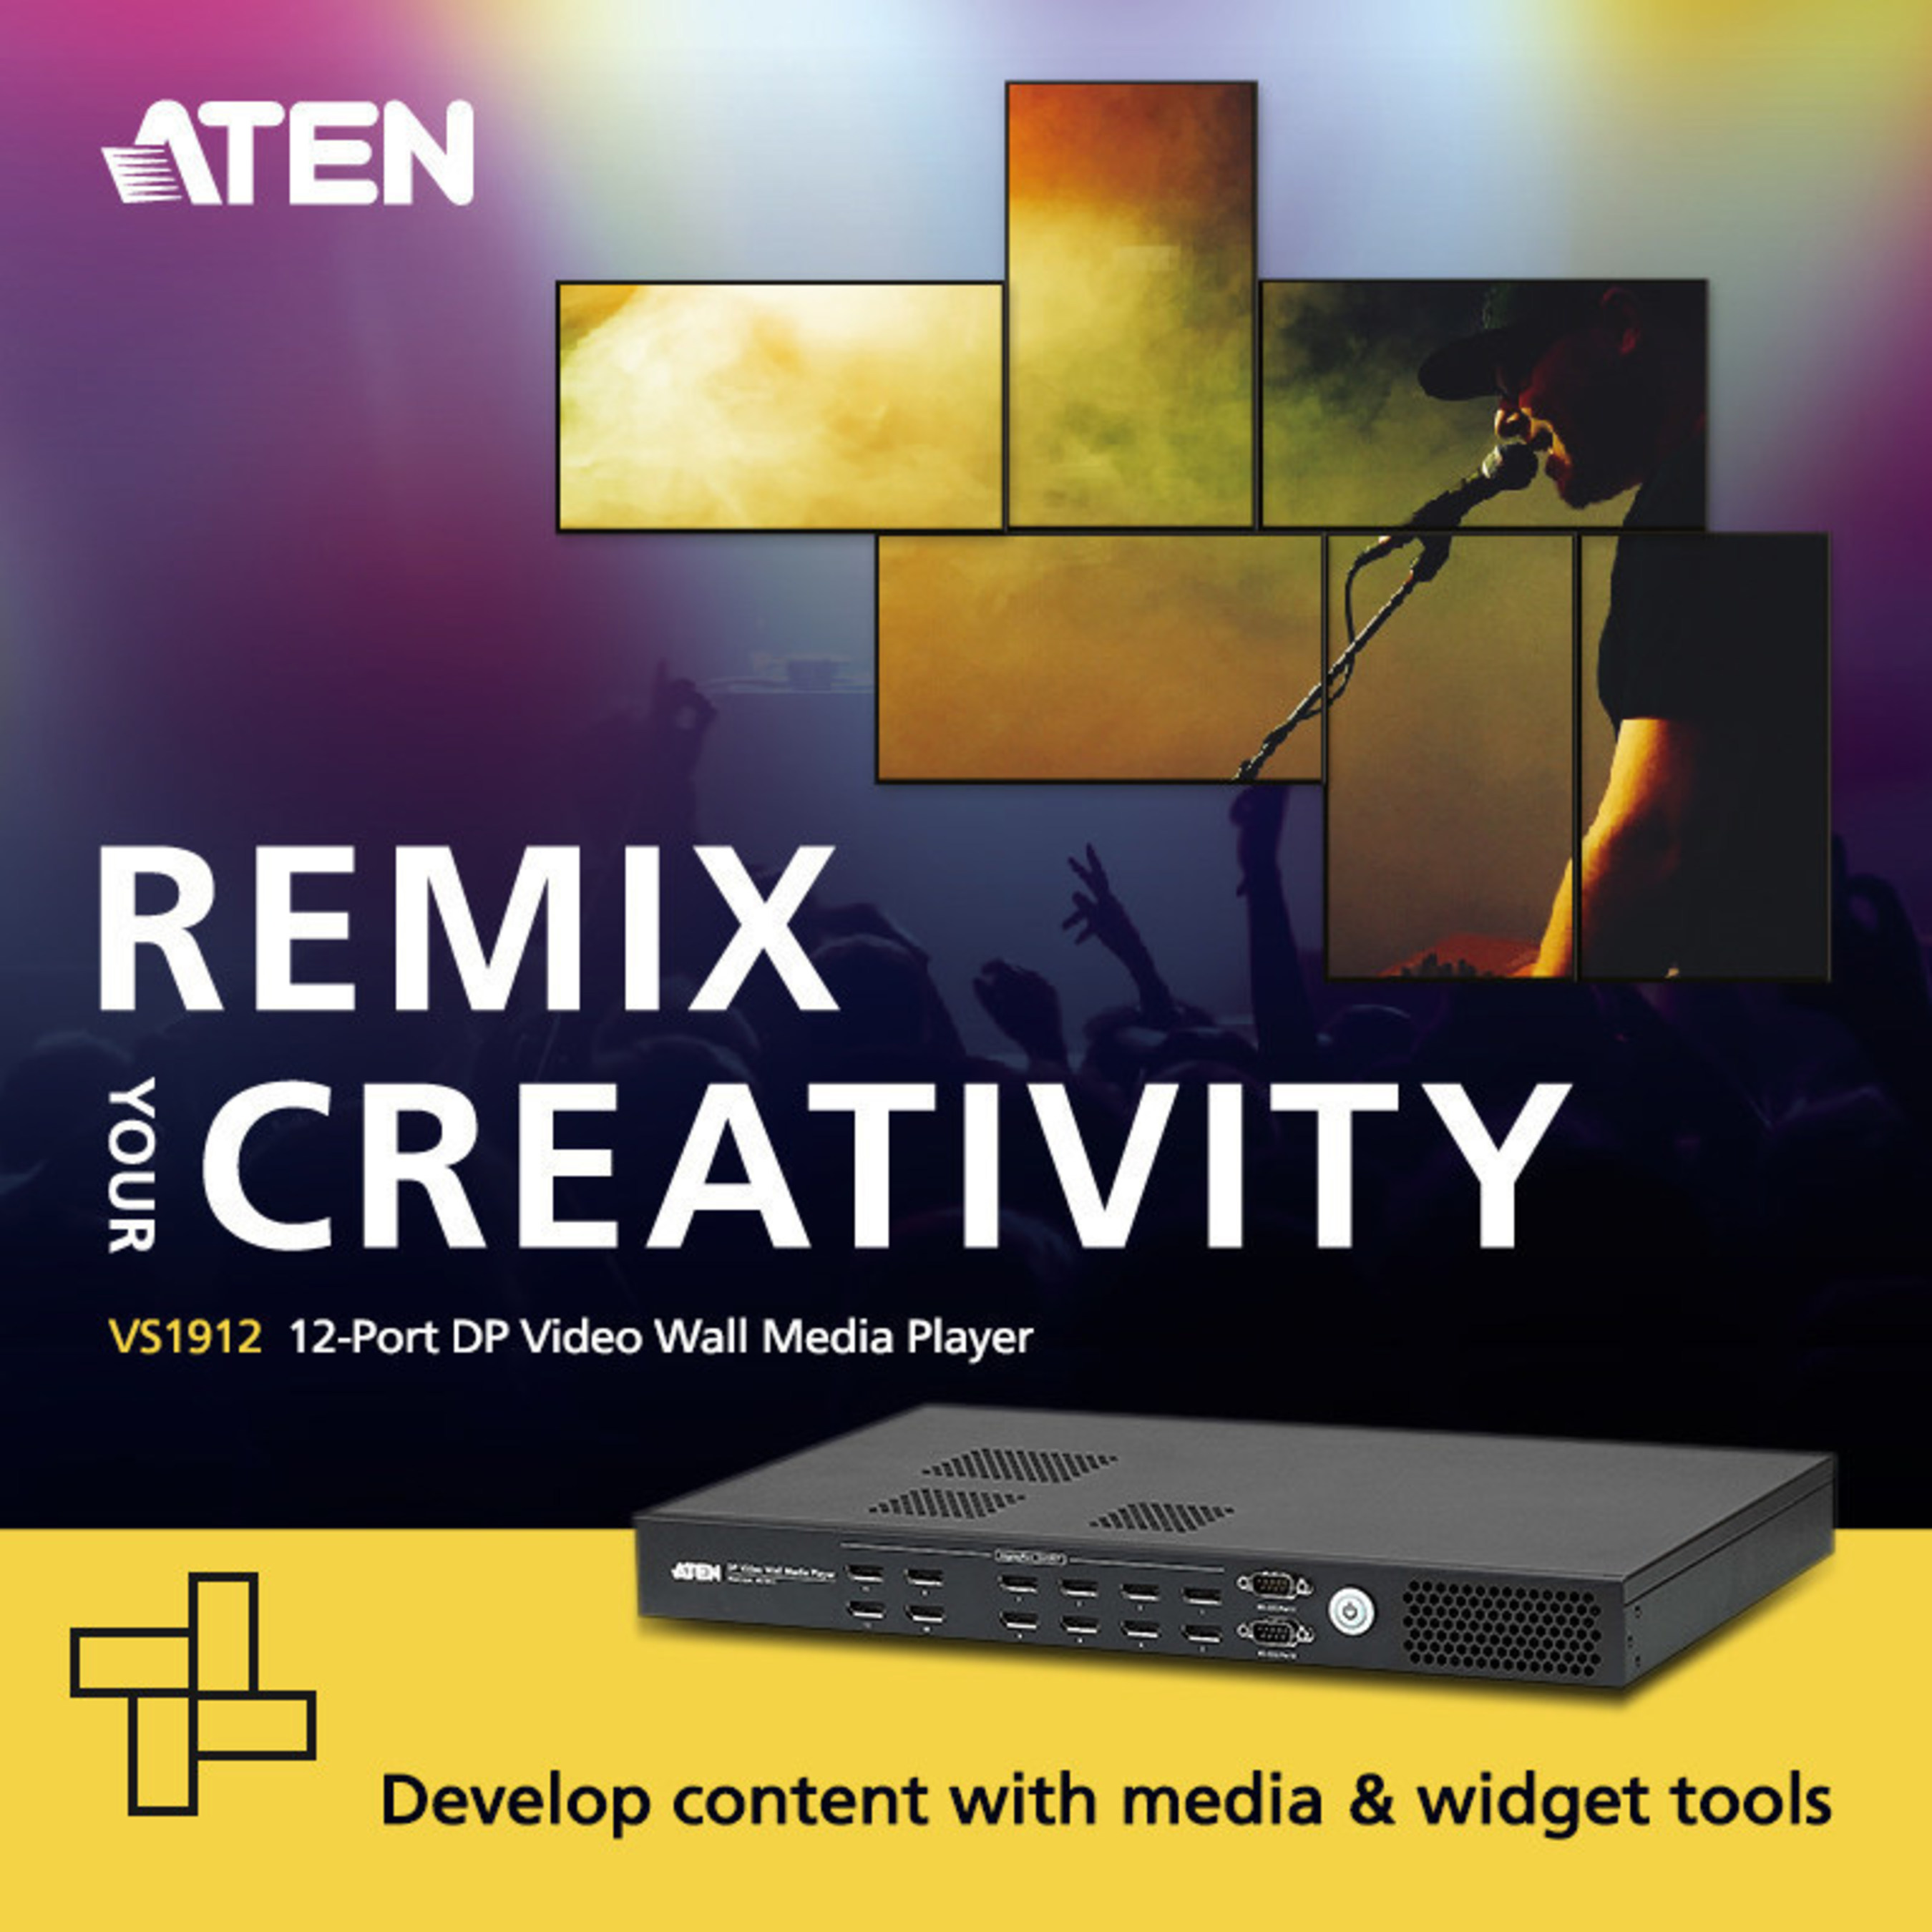 ATEN Introduces Video Wall Media Player with a Difference